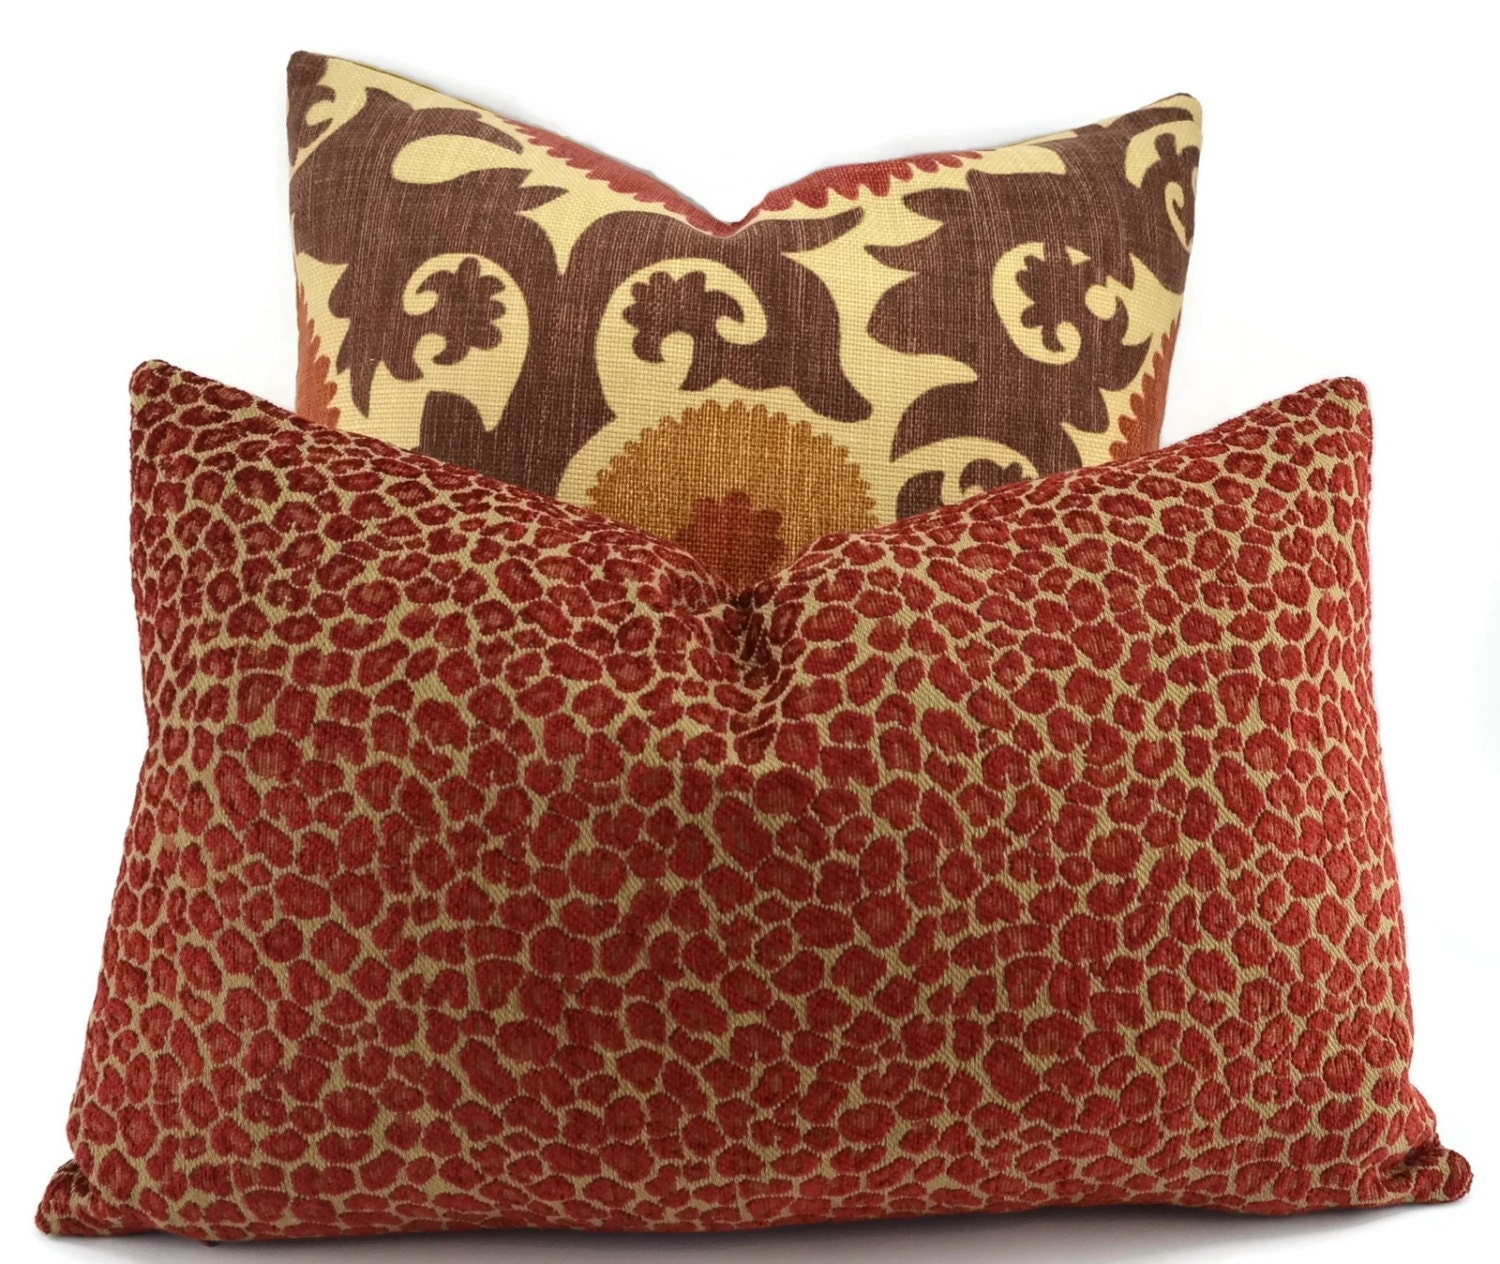 Chenille Throw Pillow Covers : Throw Pillow Cover Red & Gold Chenille Animal Print Pillow